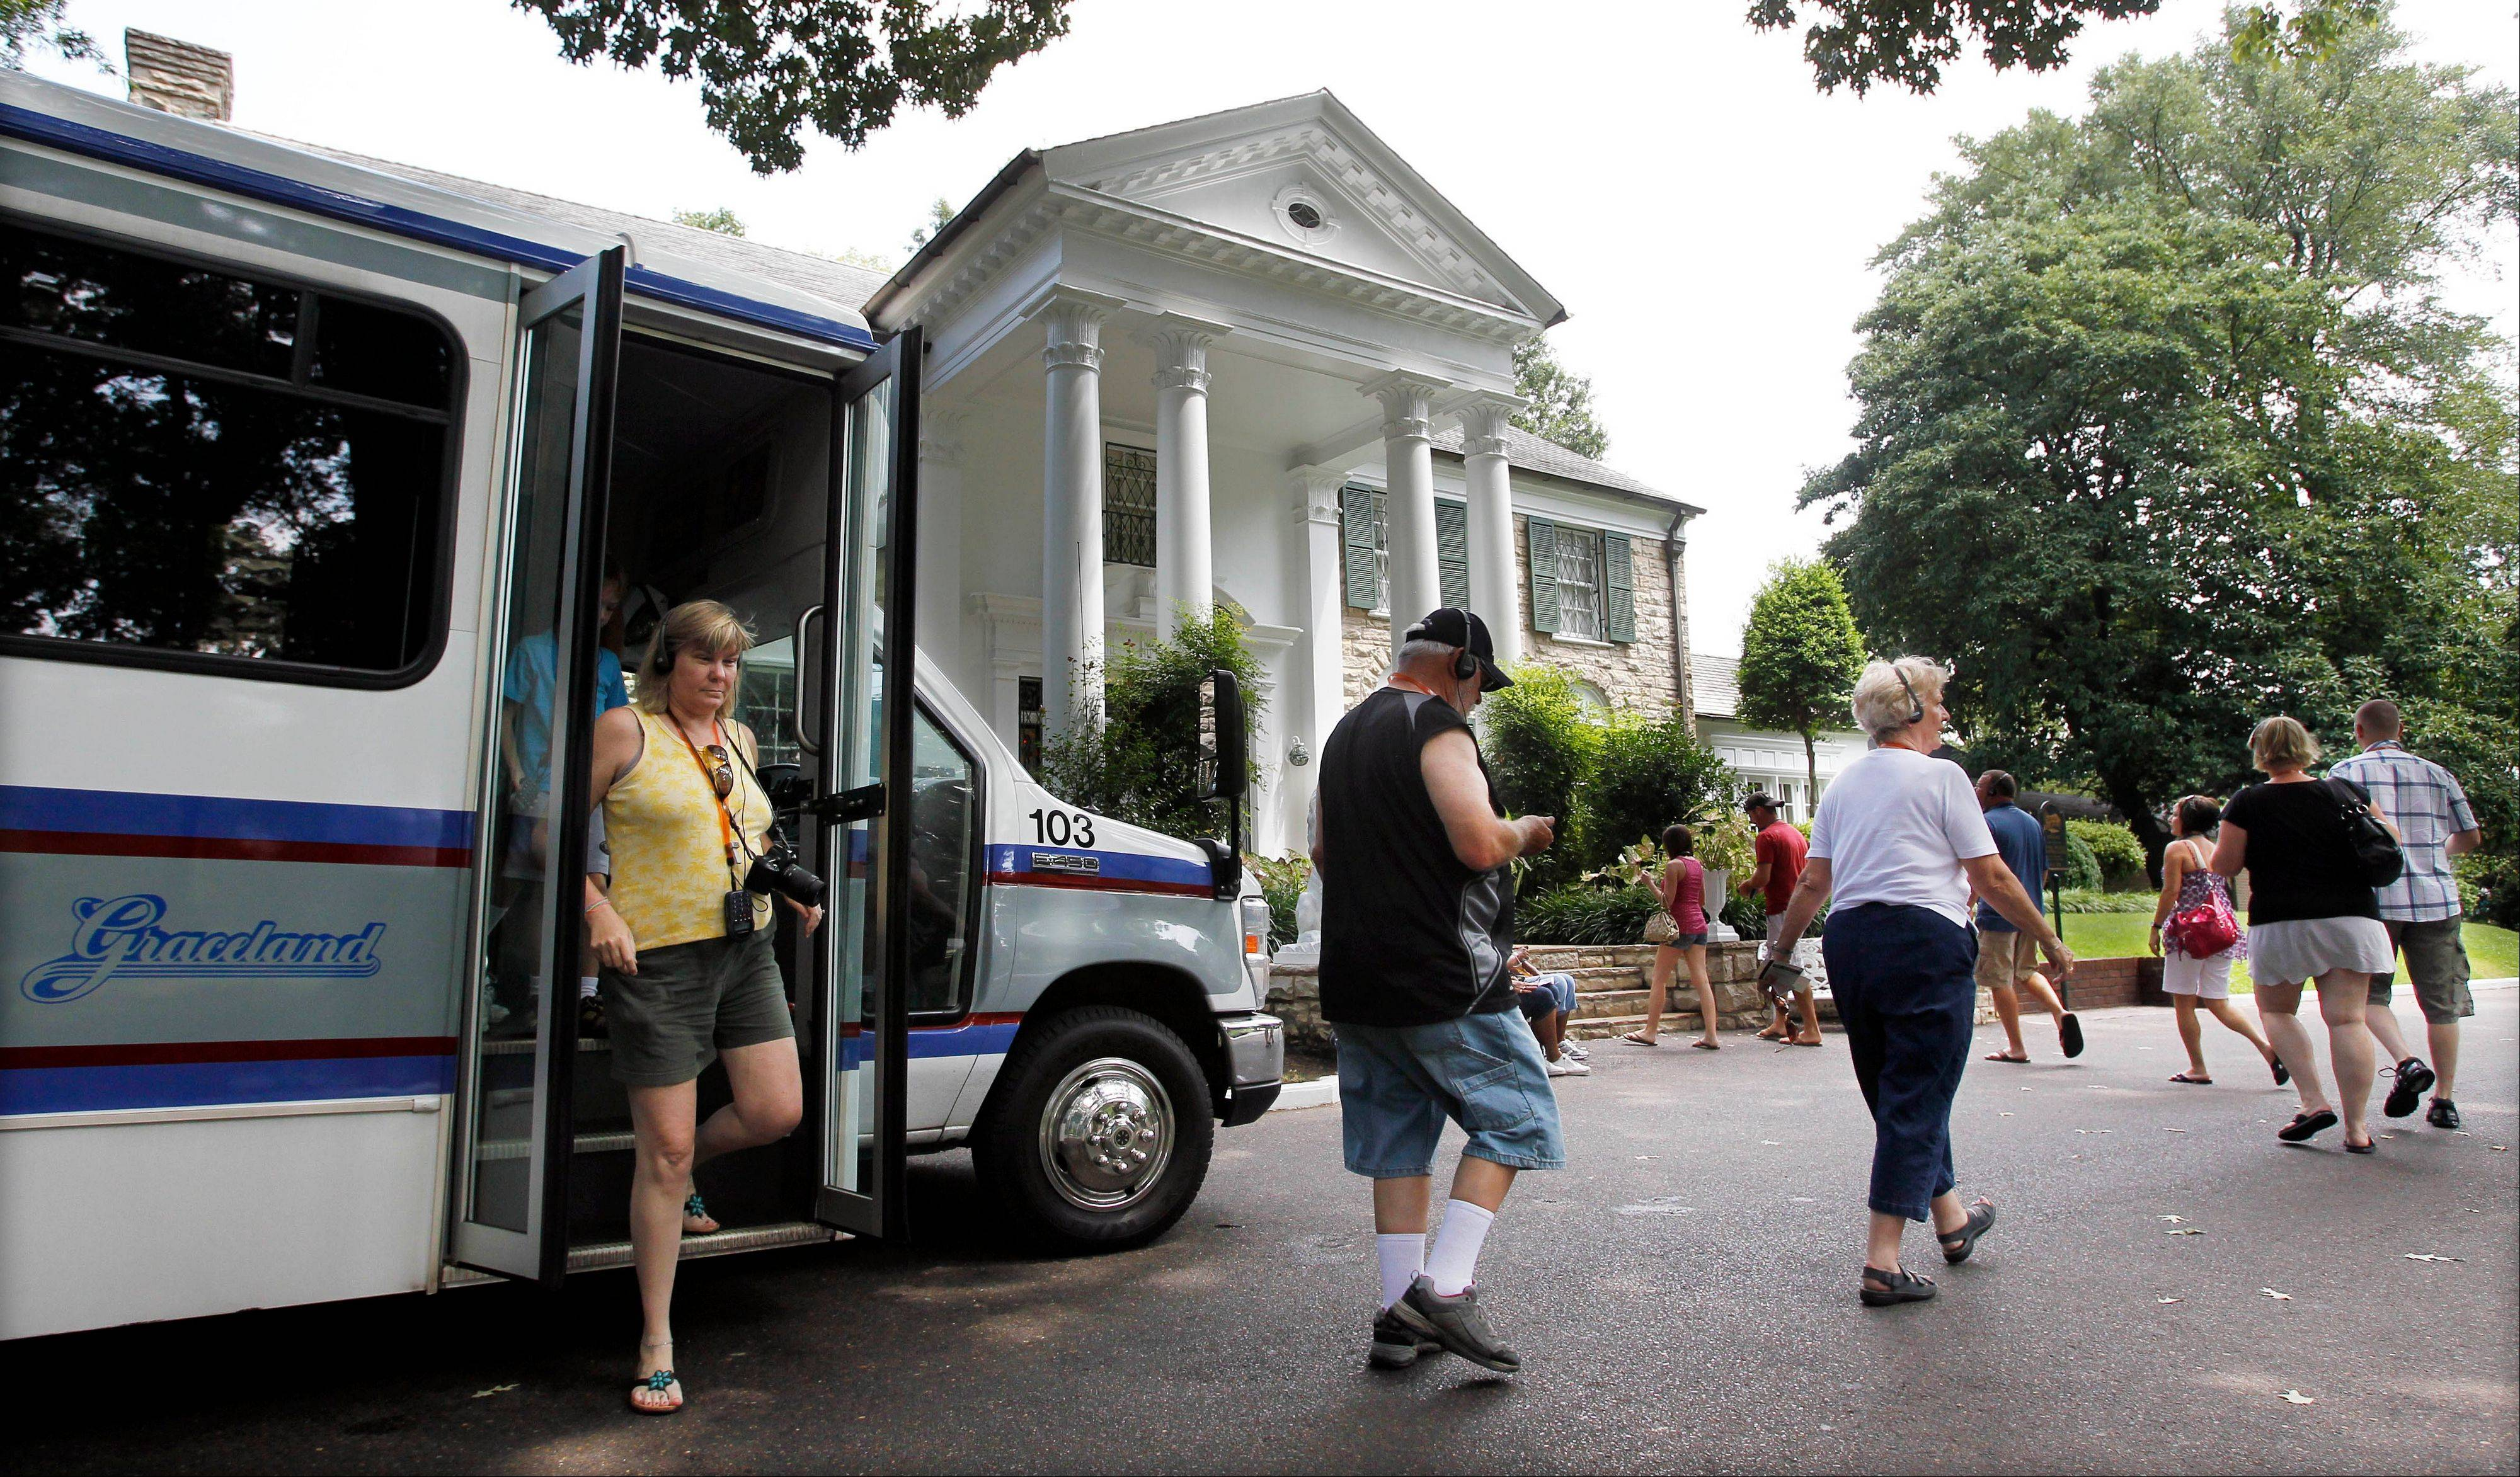 Tourists arrive at Graceland, Elvis Presley's home in Memphis, Tenn.